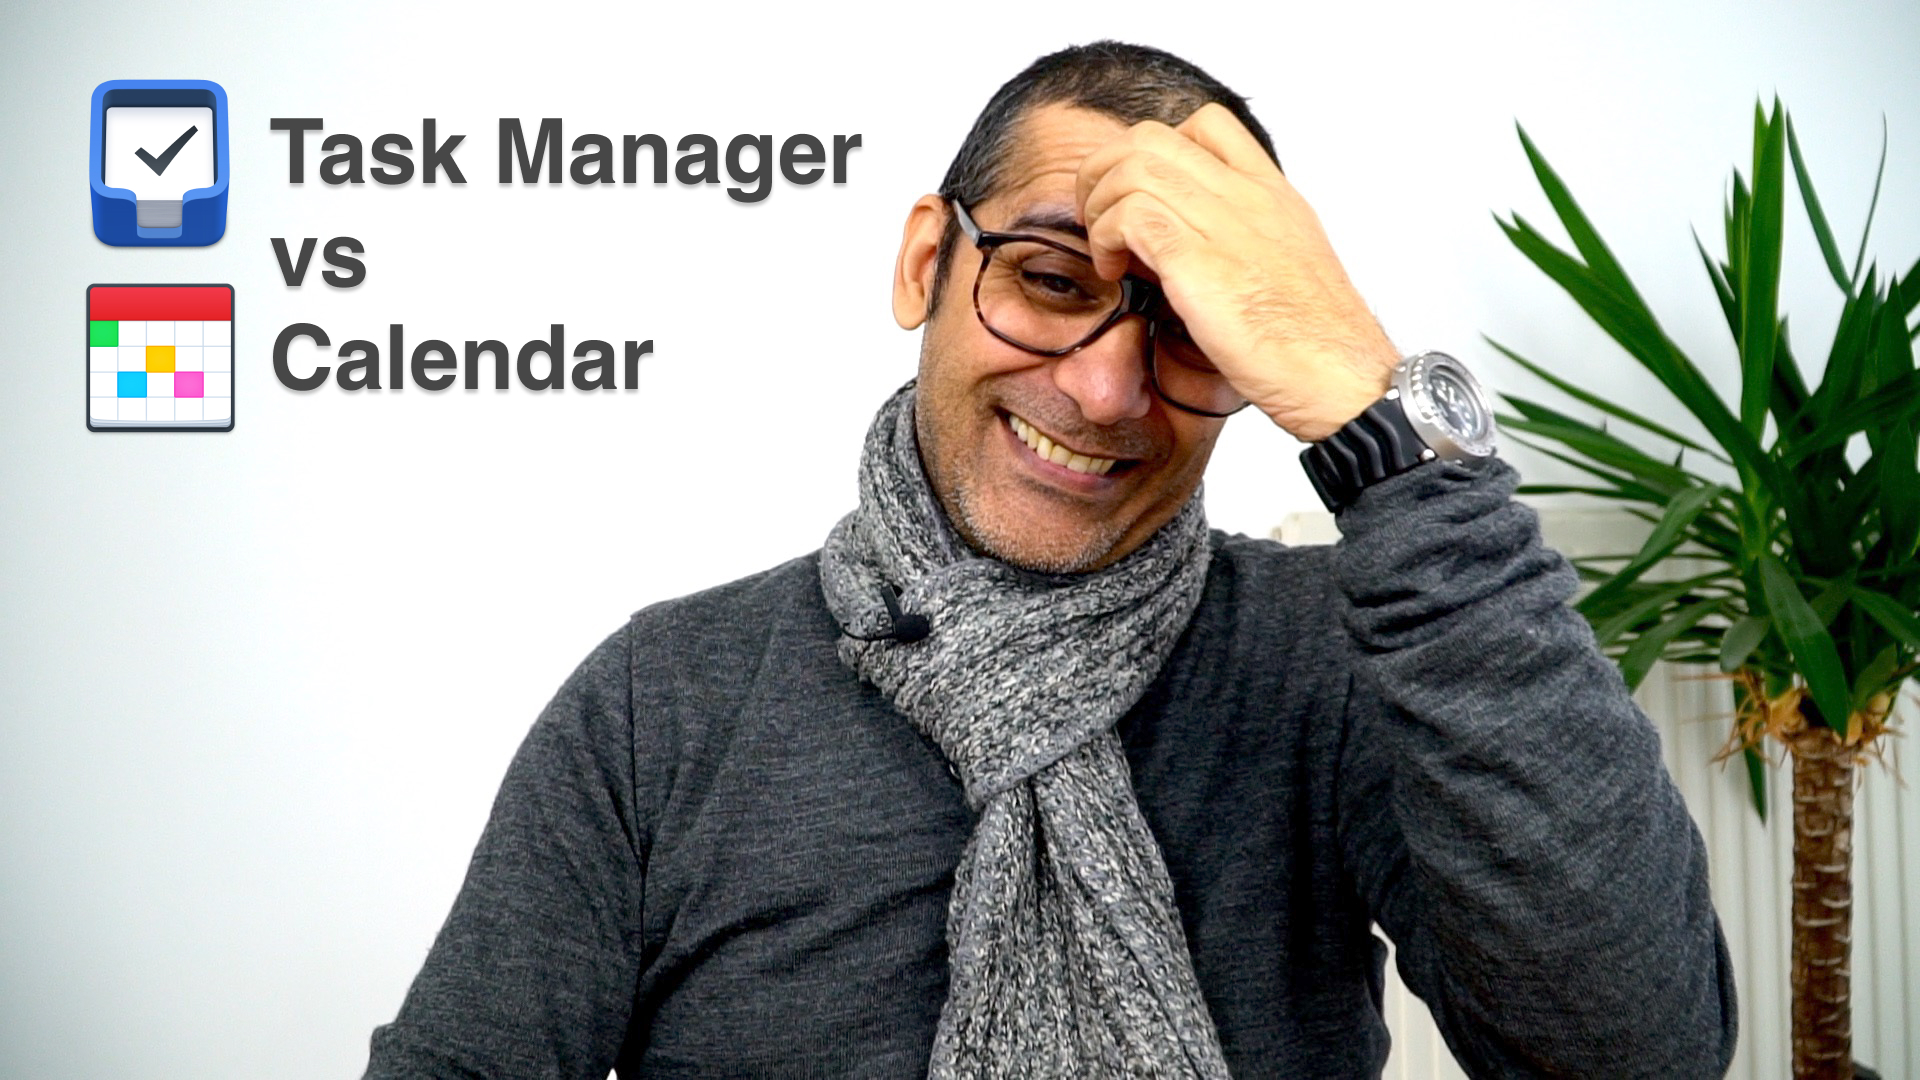 Using a calendar vs a task manager